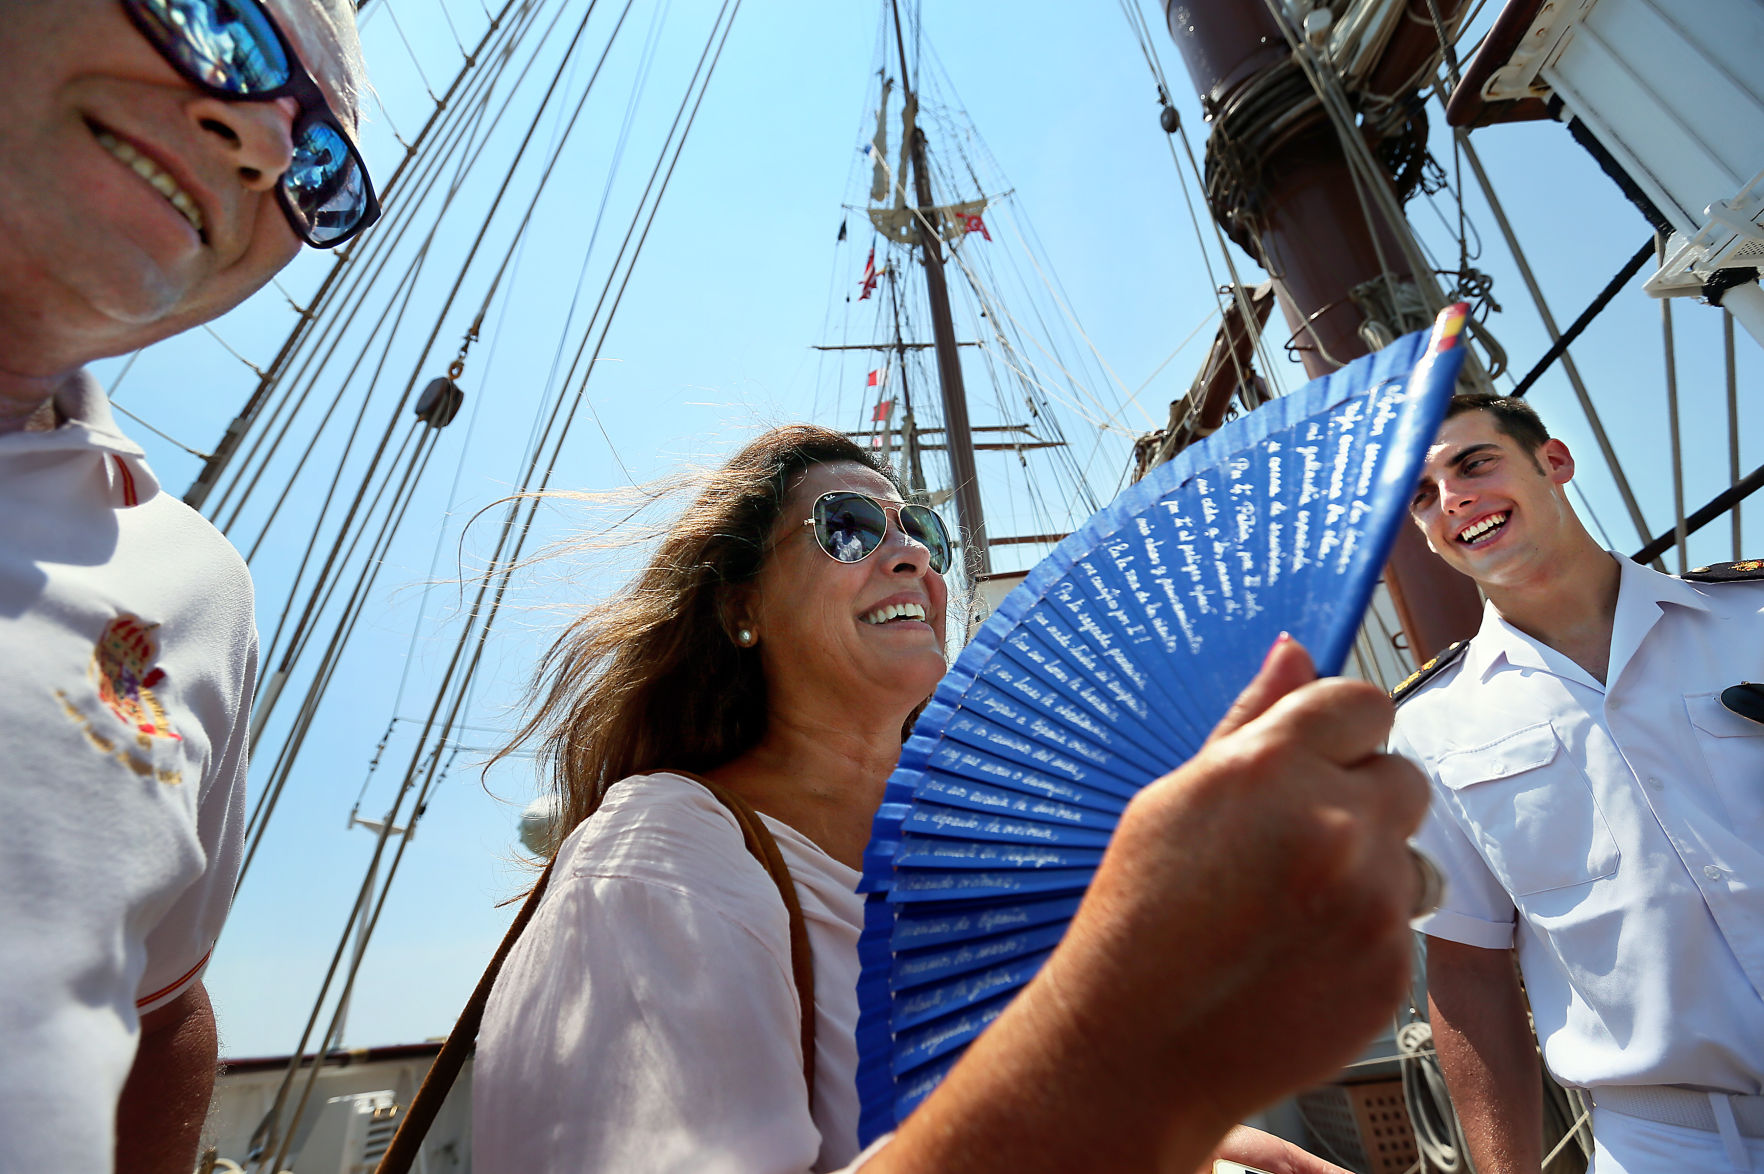 parents sailor Spanish Navy tall ship.jpg | Post and Courier